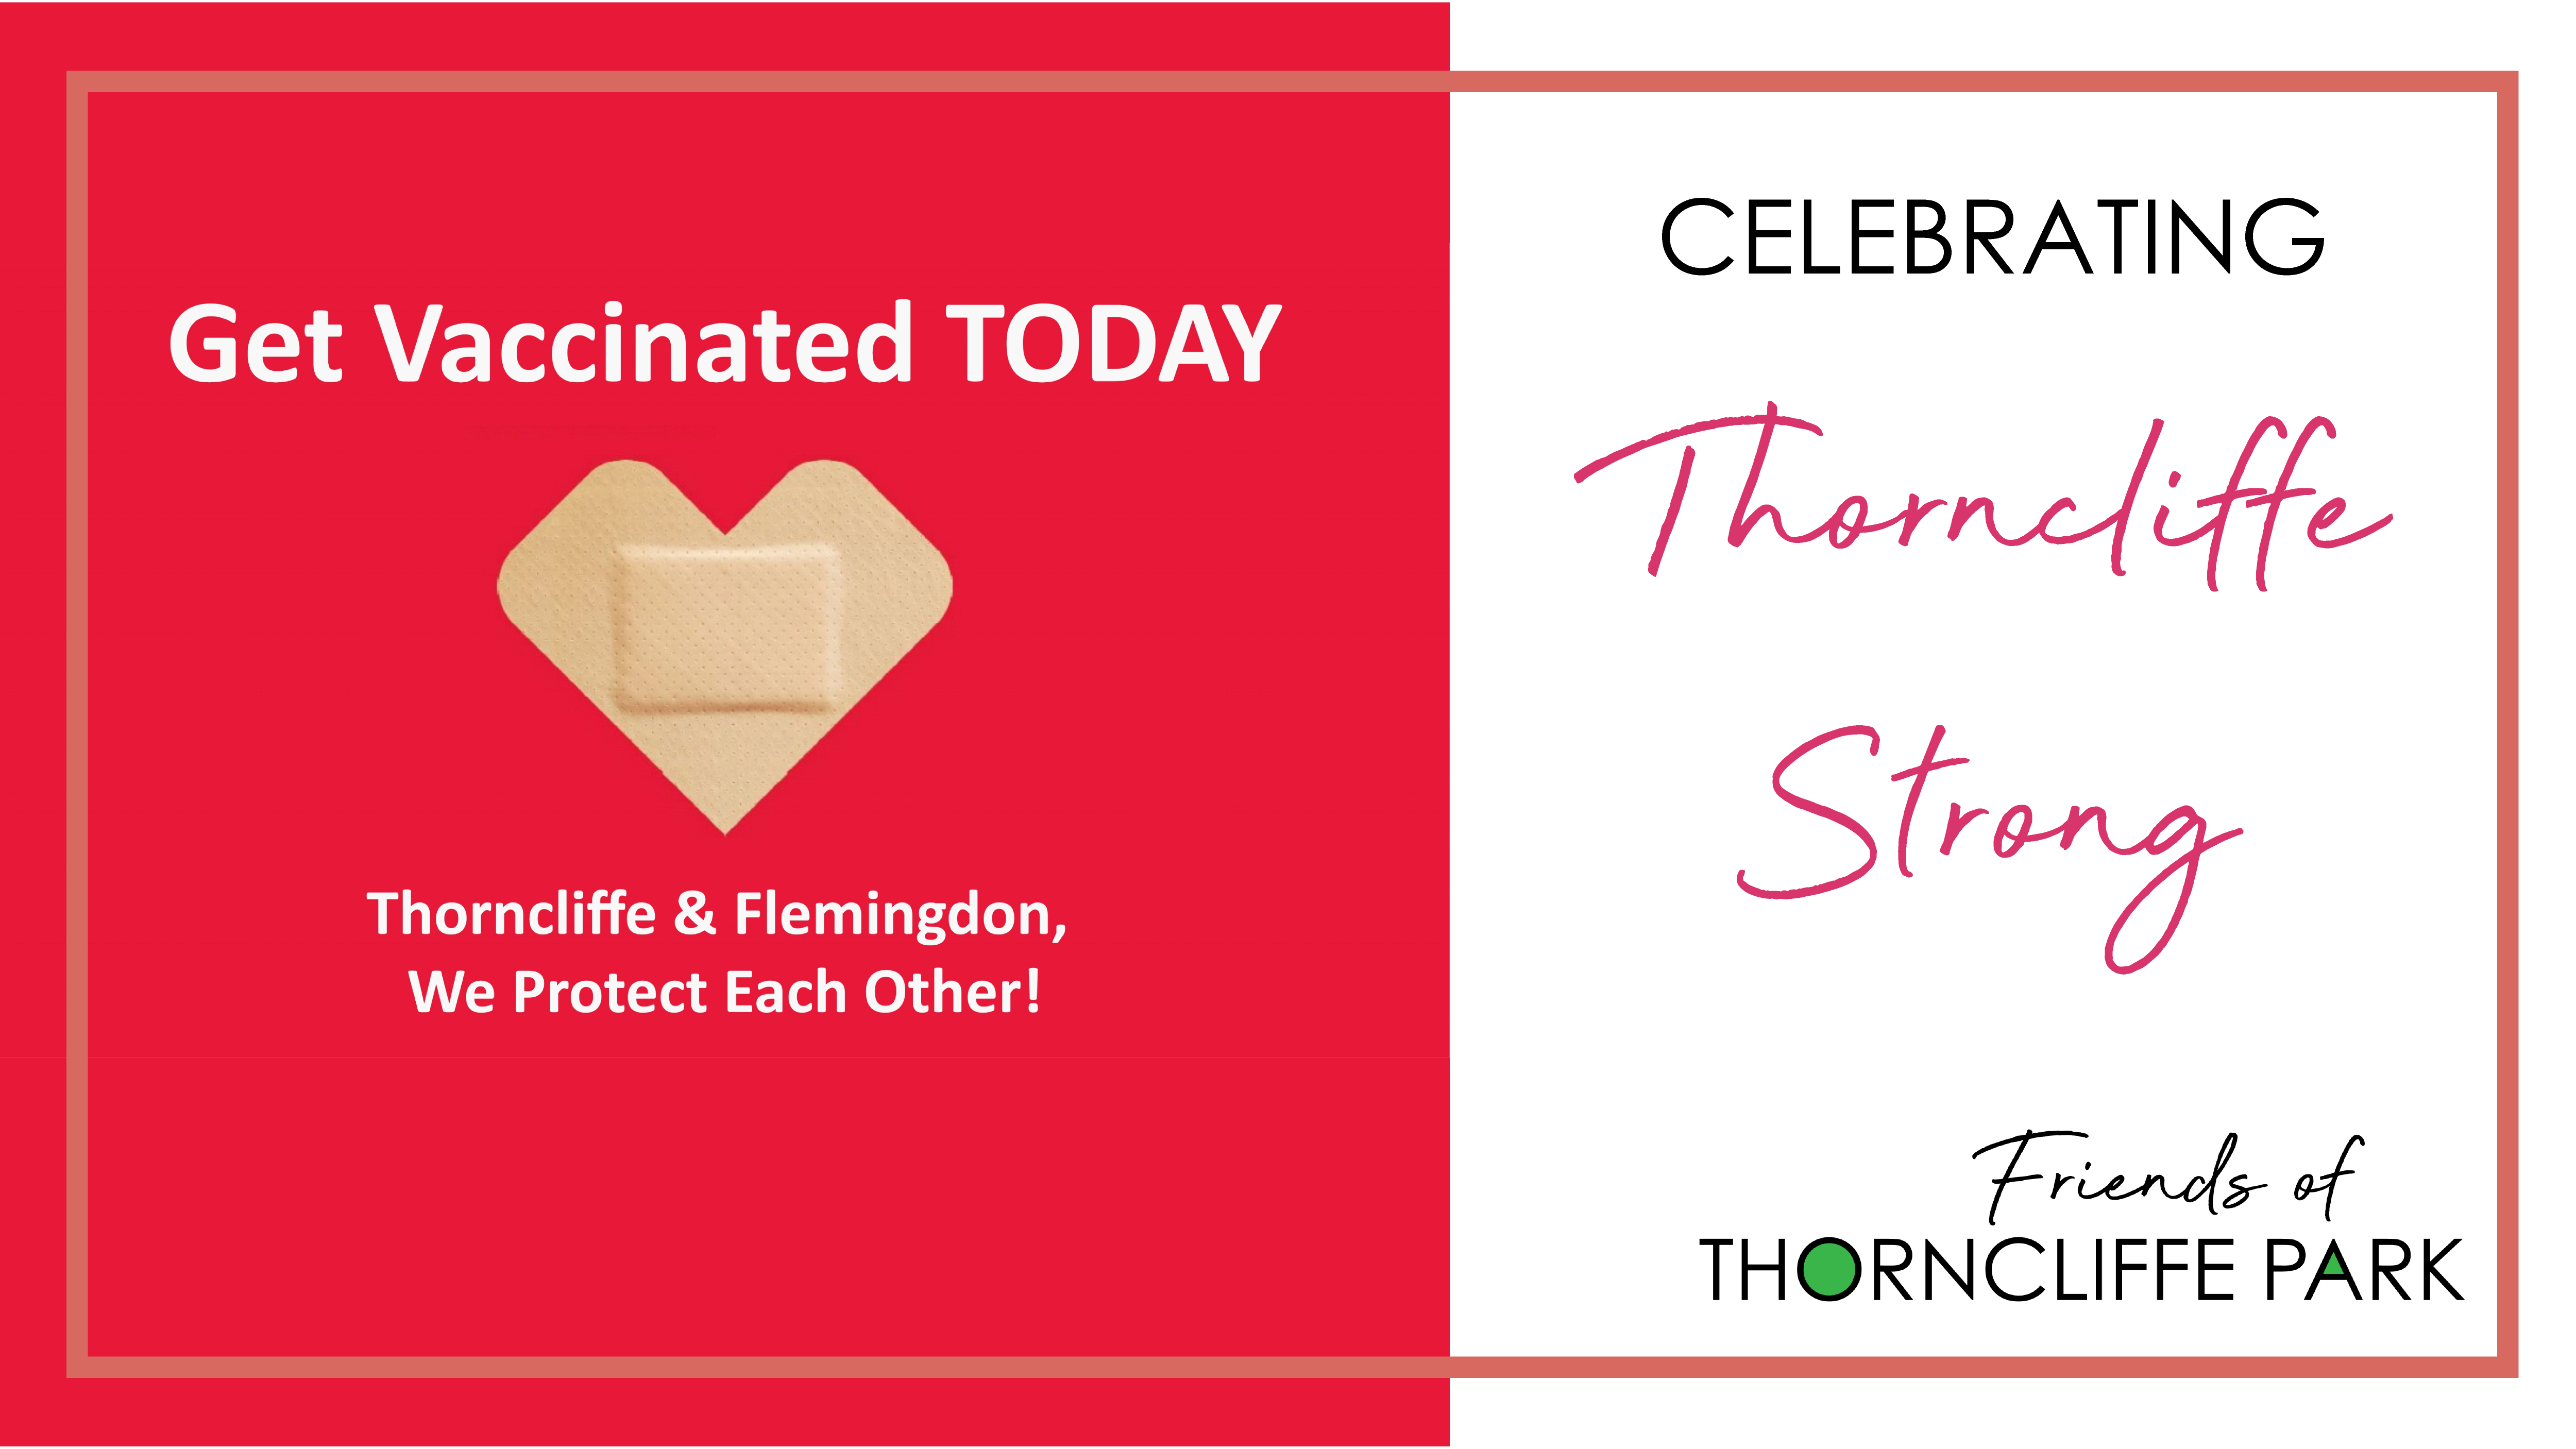 01_Celebrating_Thorncliffe_Strong.png